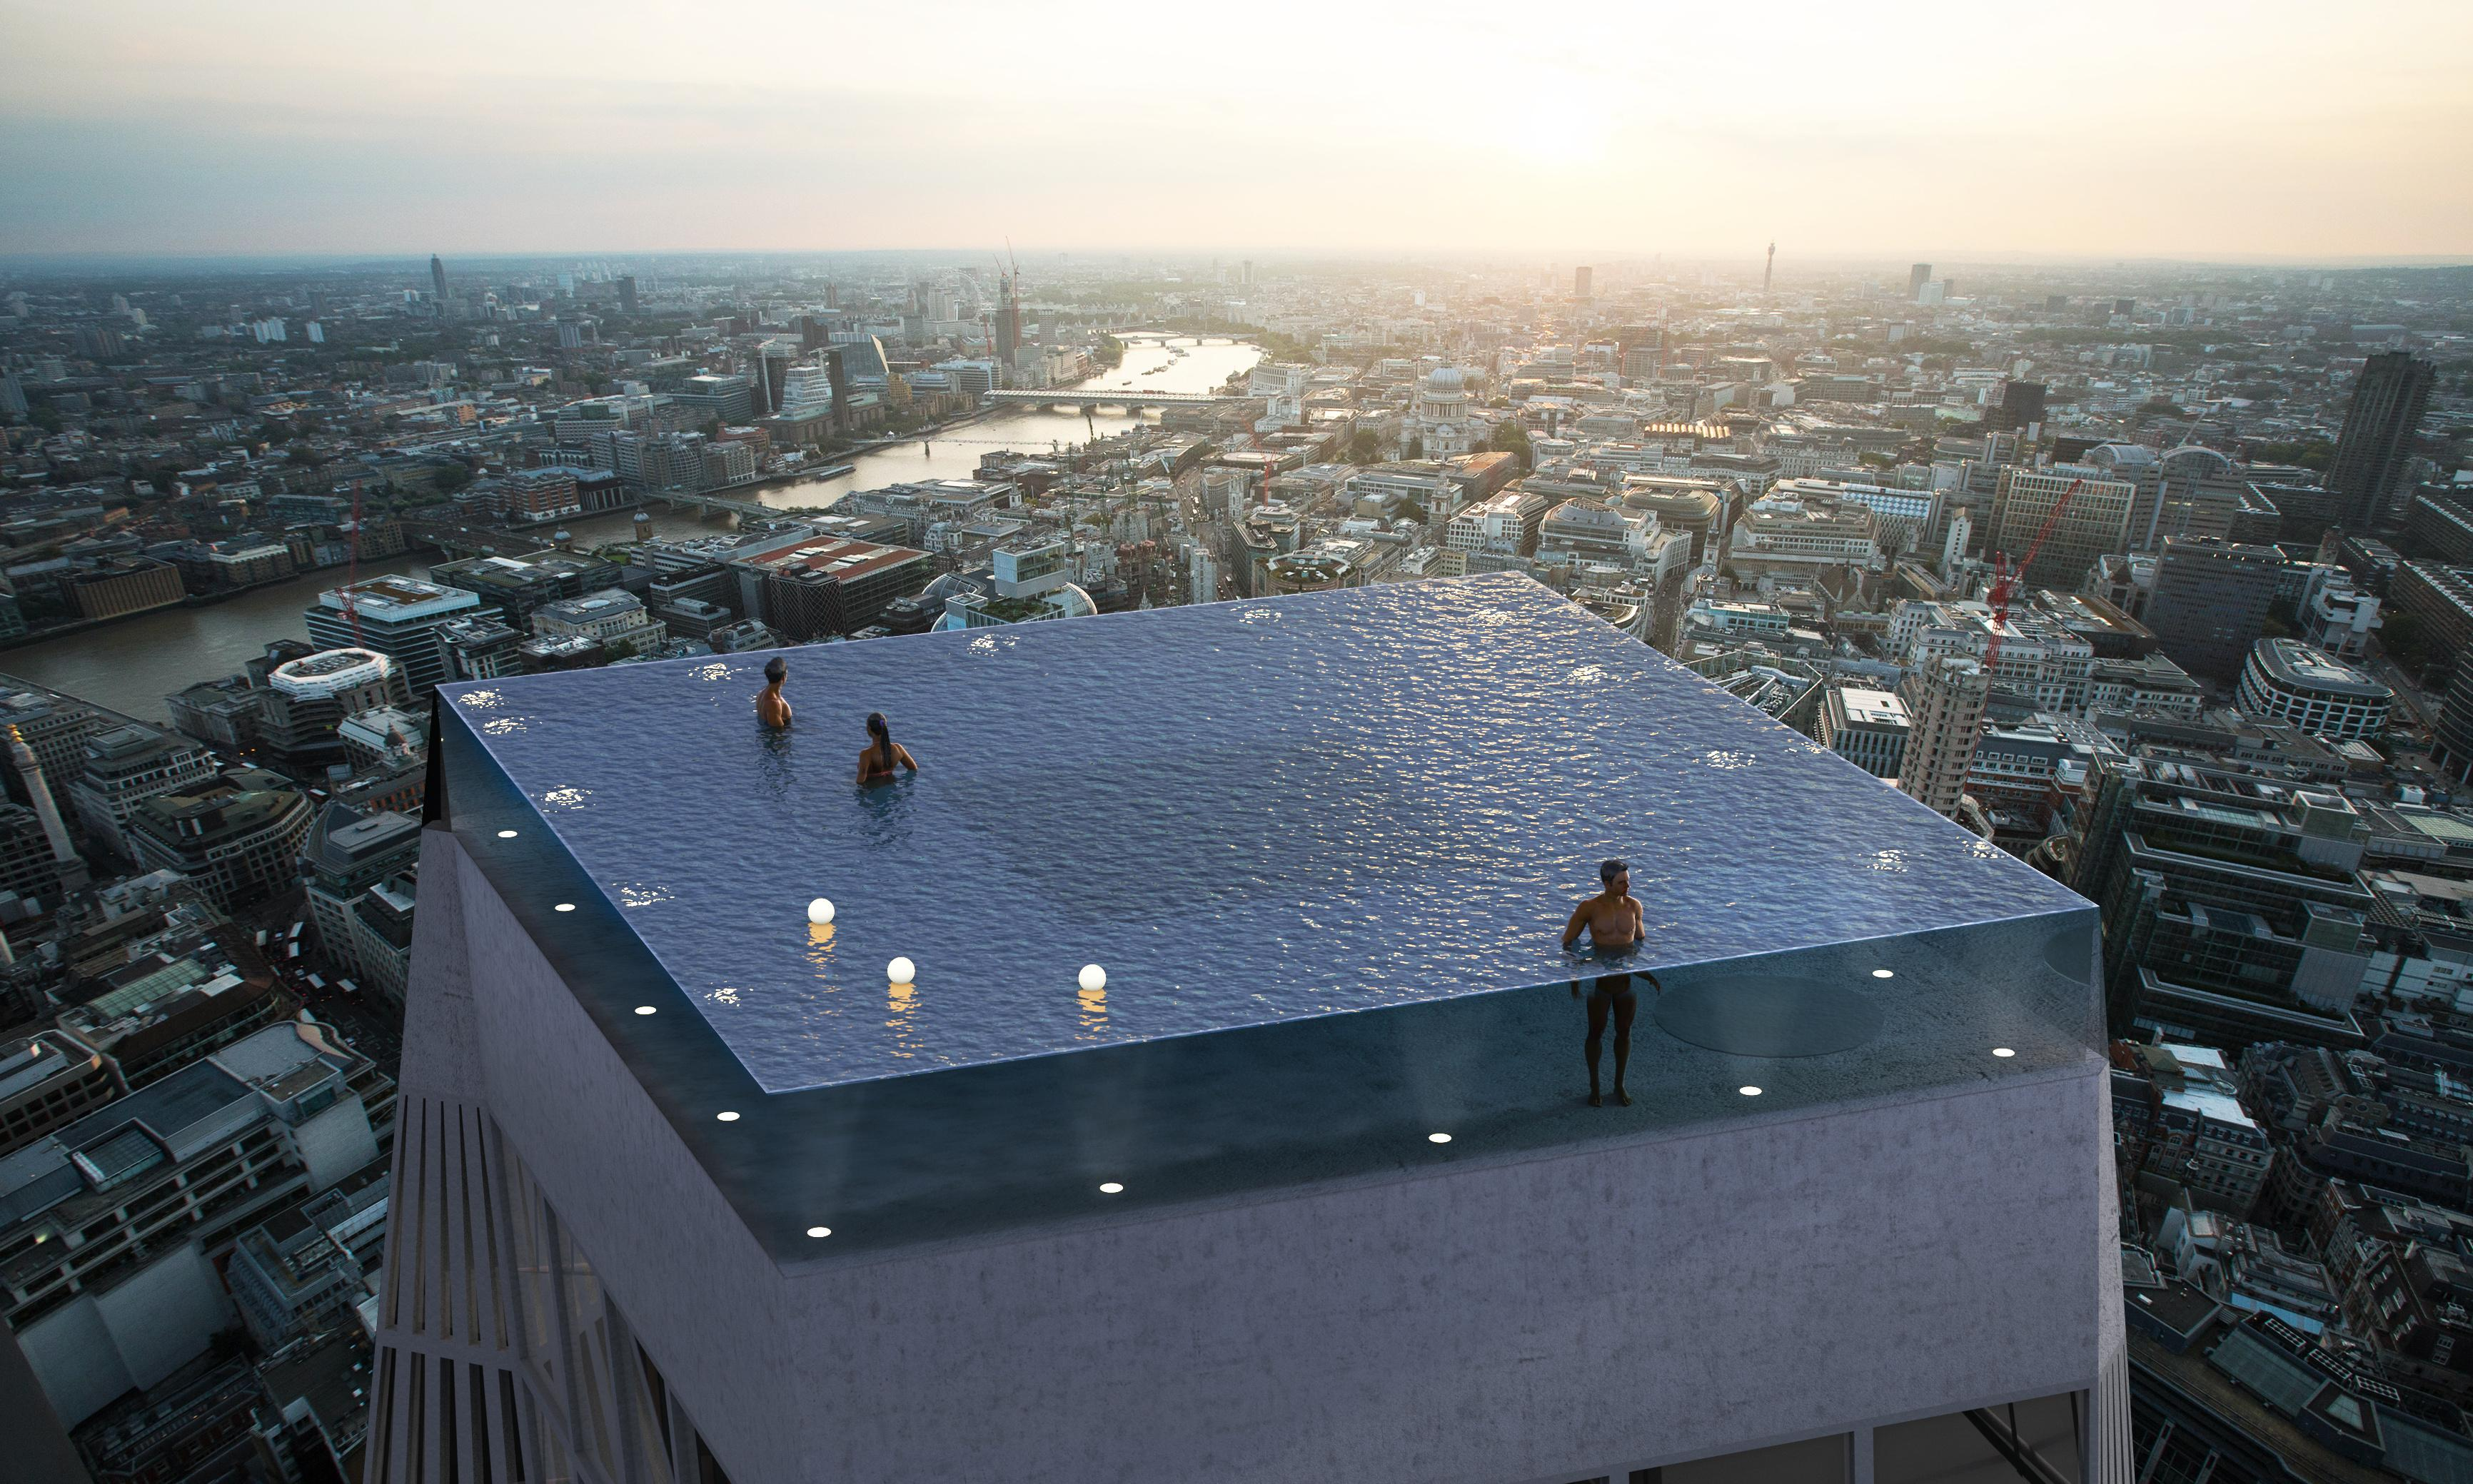 The skyscraper infinity pool – sorry, but where's the diving board?